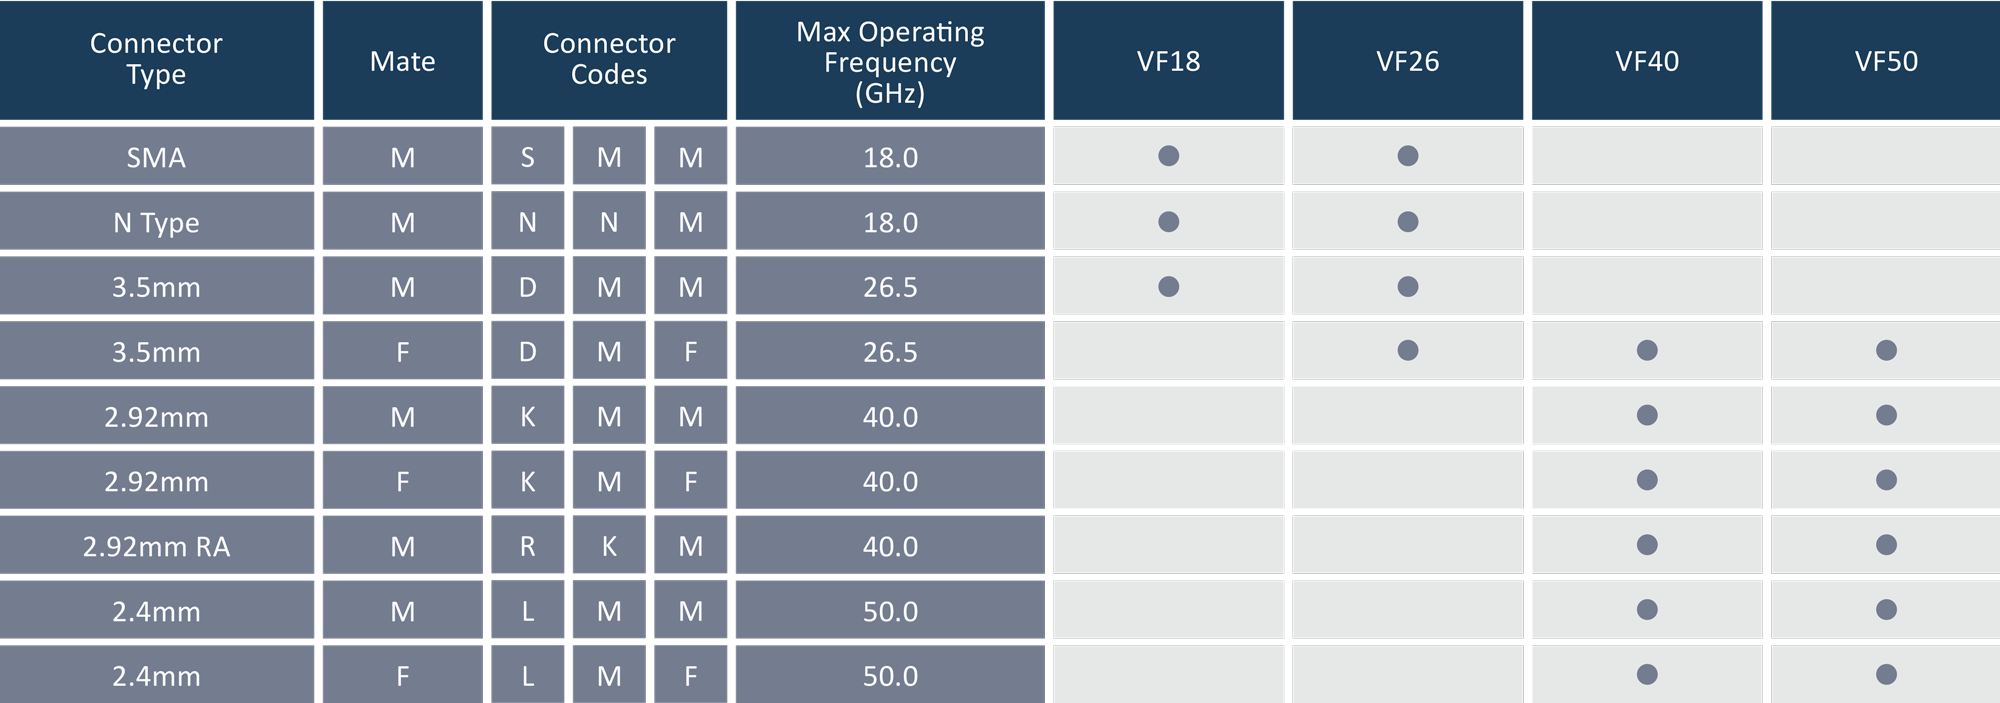 Continuum Technologies - Vero RF Cable Series - veroFLEX - Criteria for Connector Selection